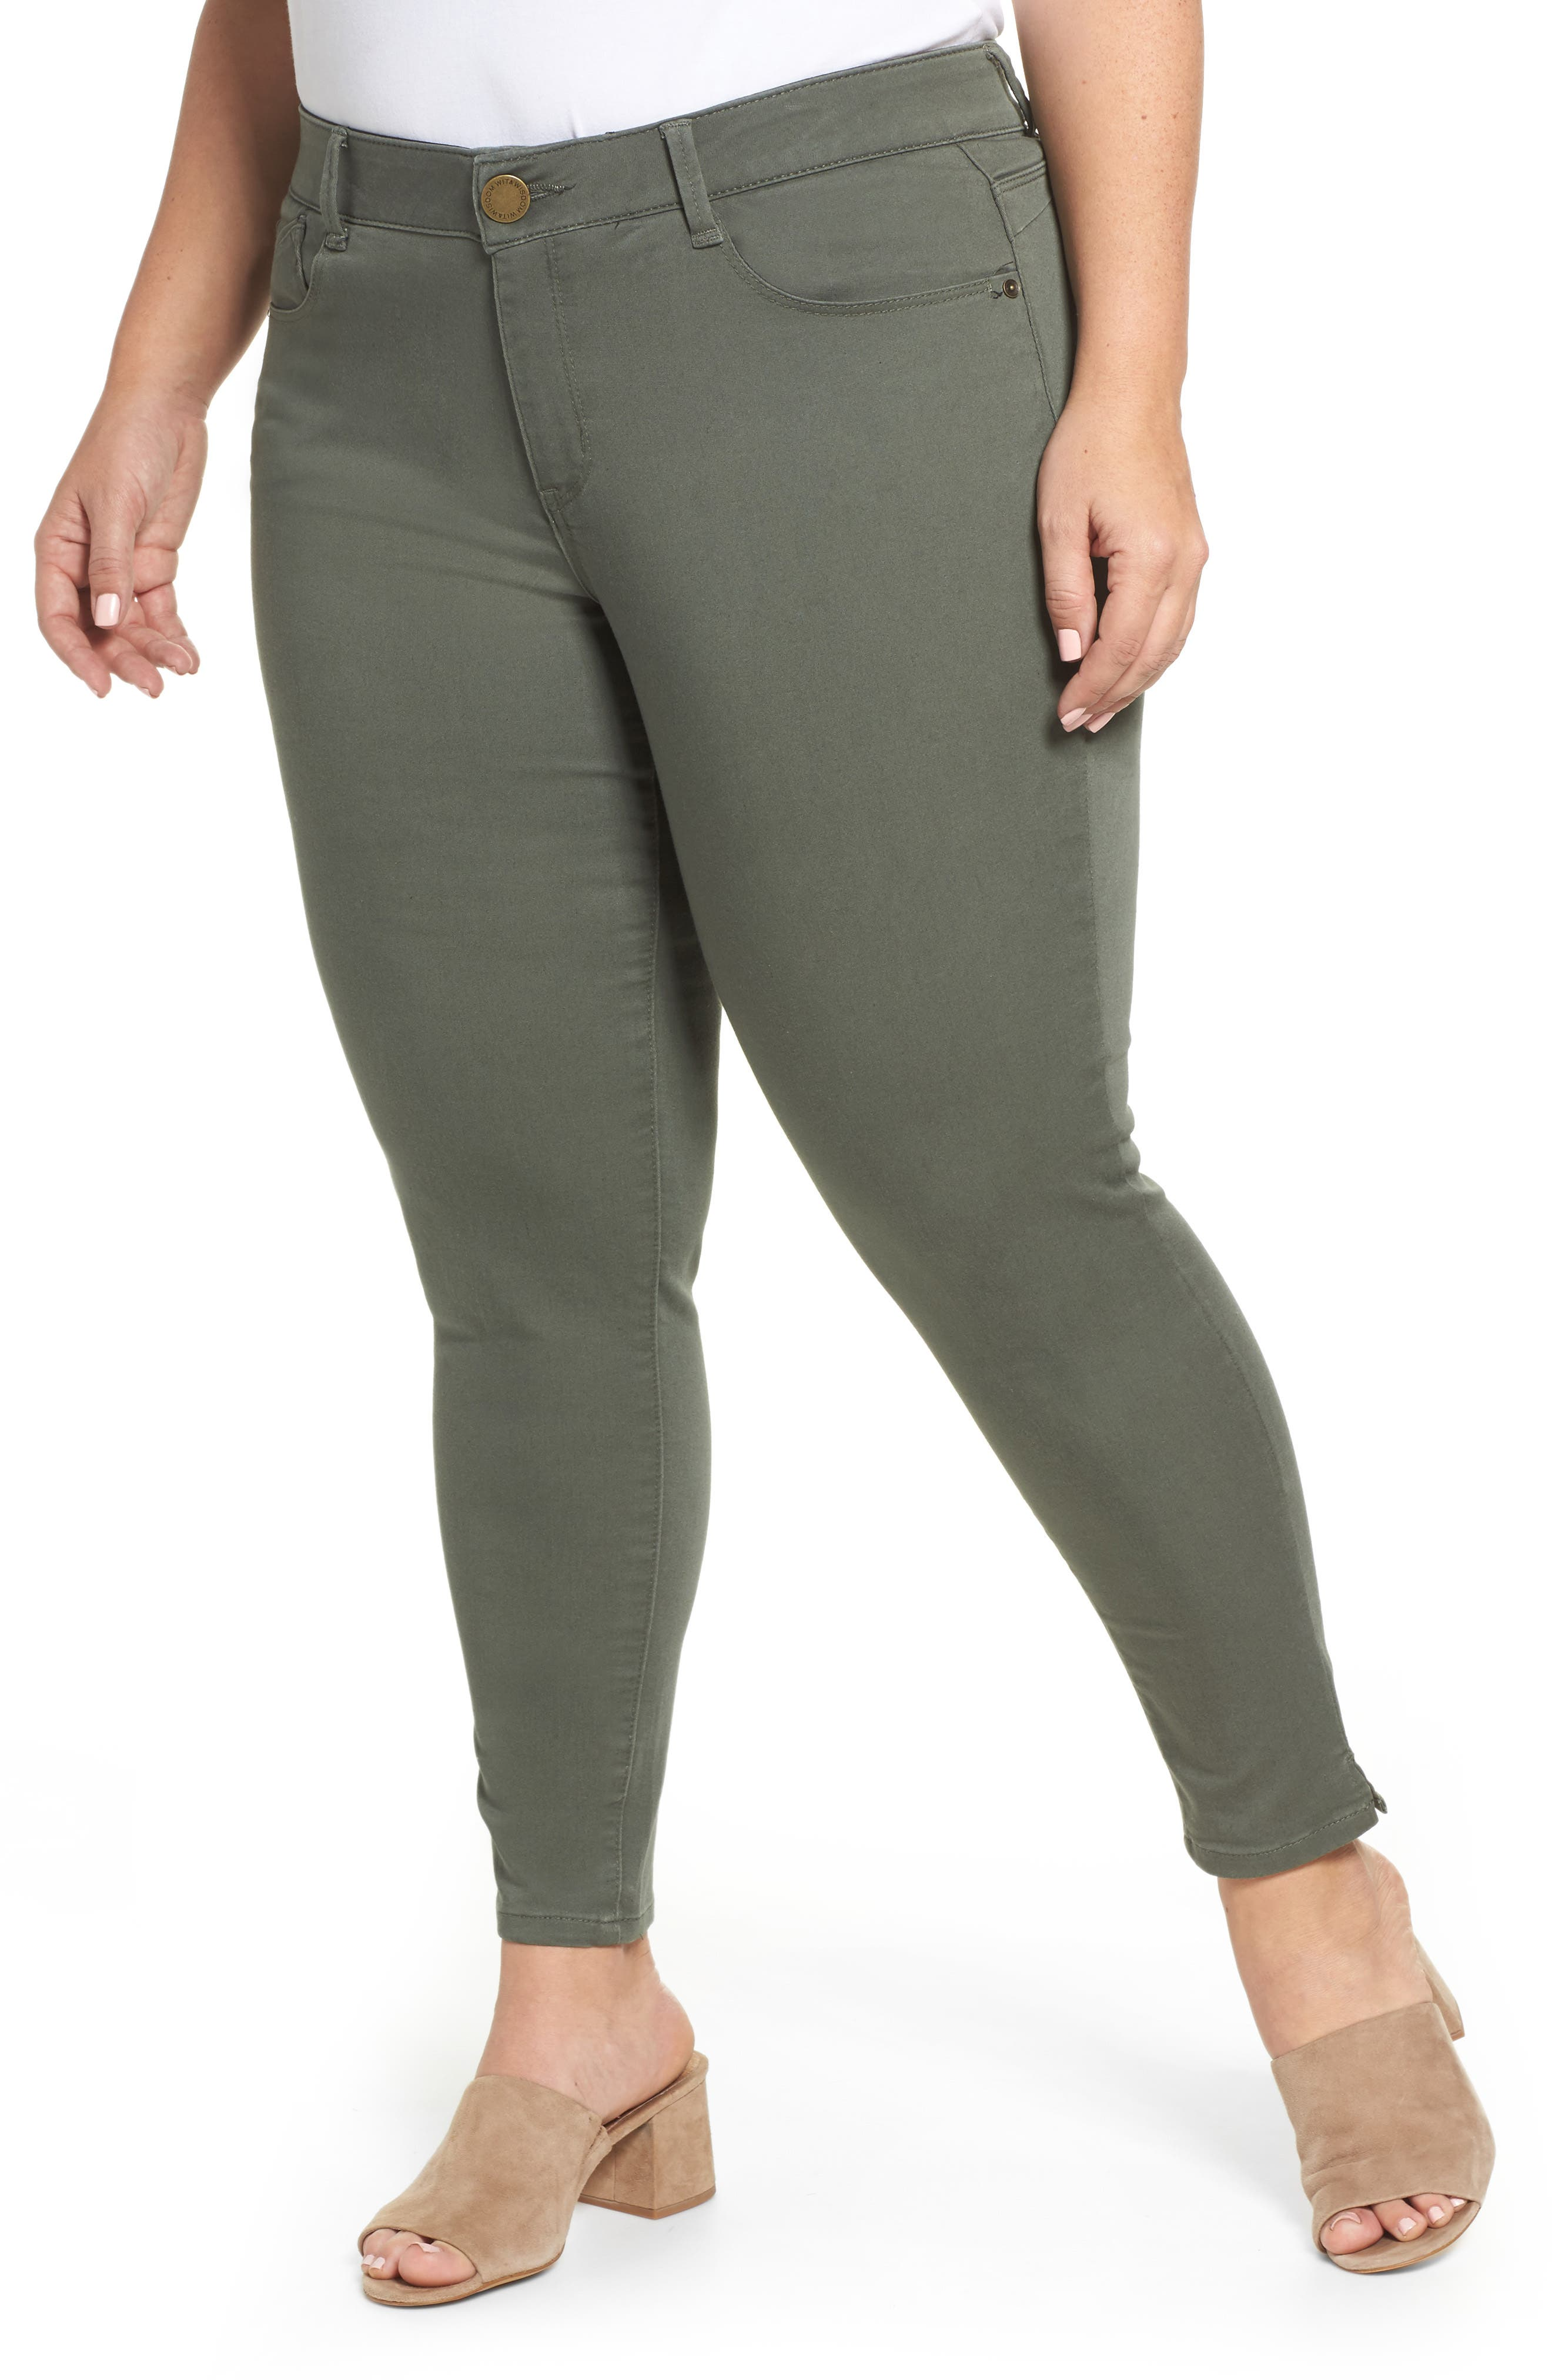 Ab-solution Ankle Pants,                         Main,                         color, THYME